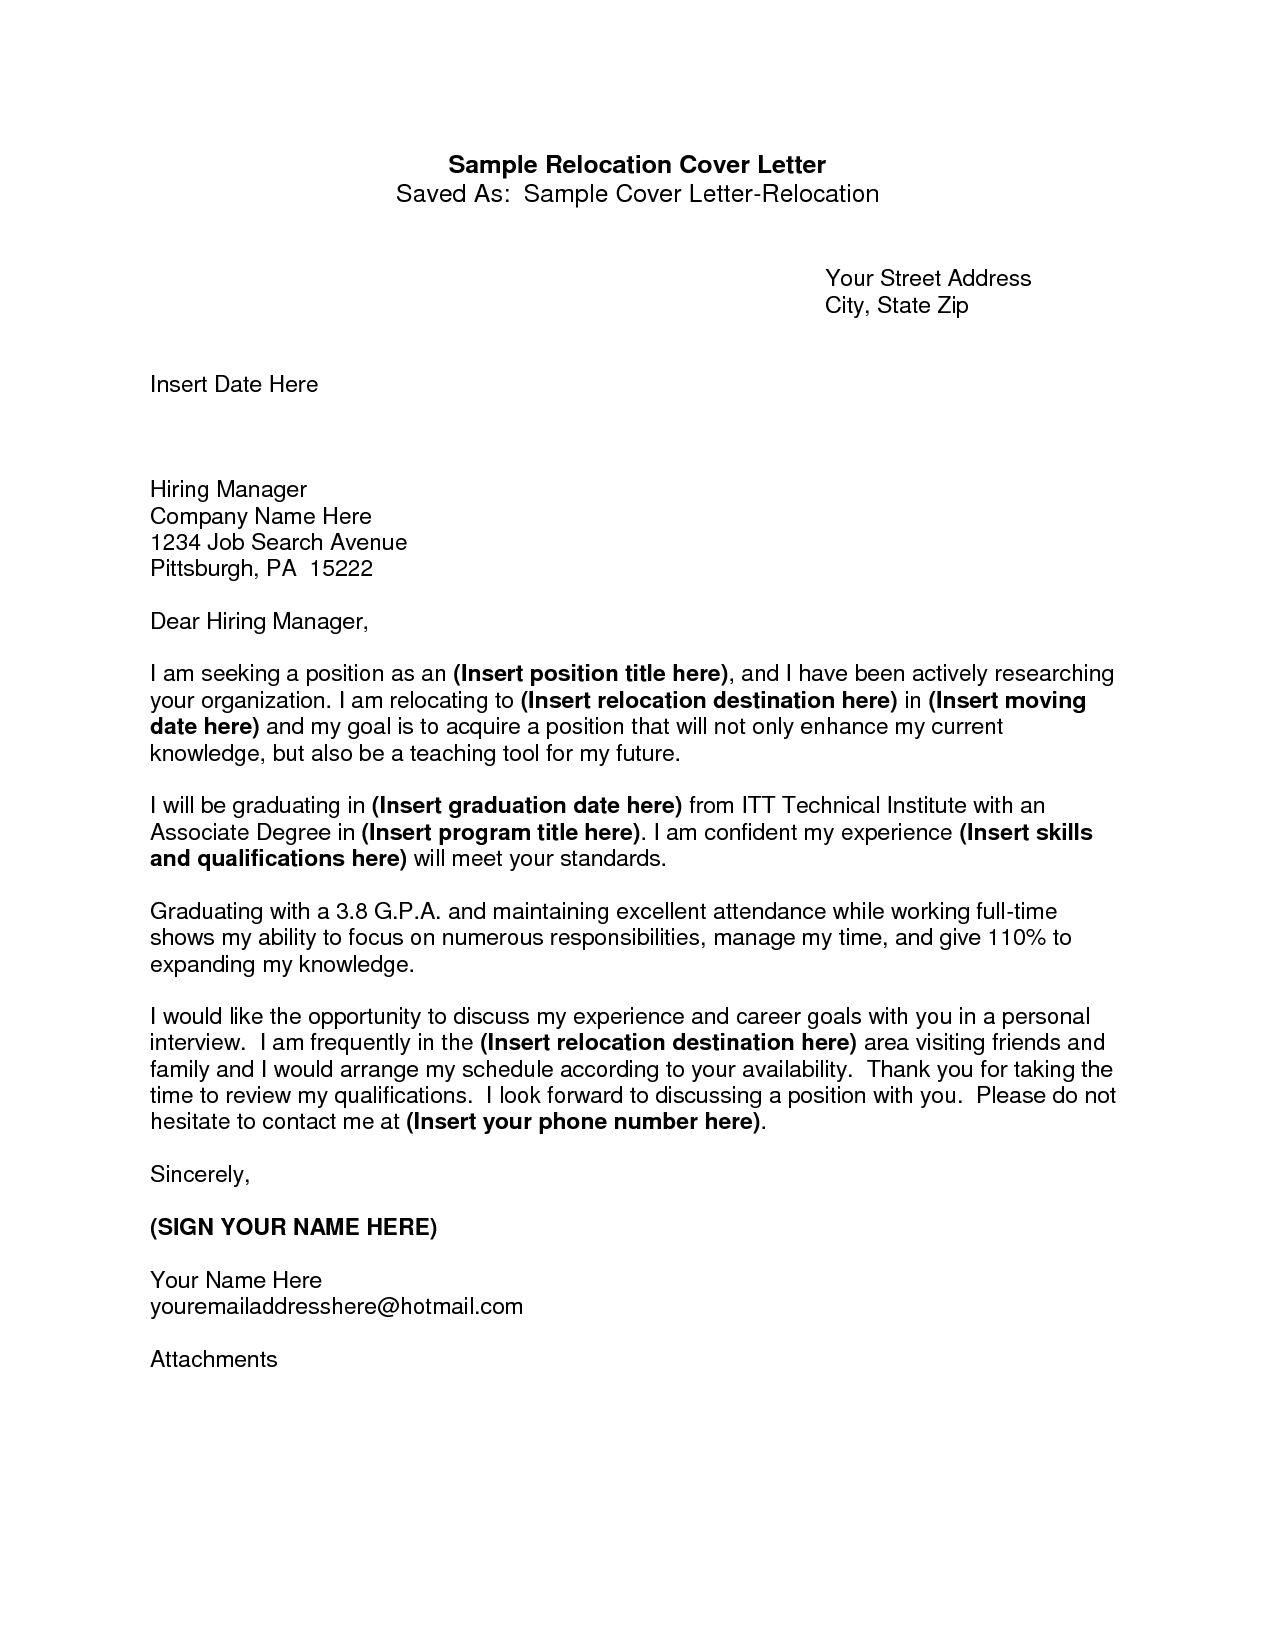 Covering Letter Example Writing A Cover Letter Relocation